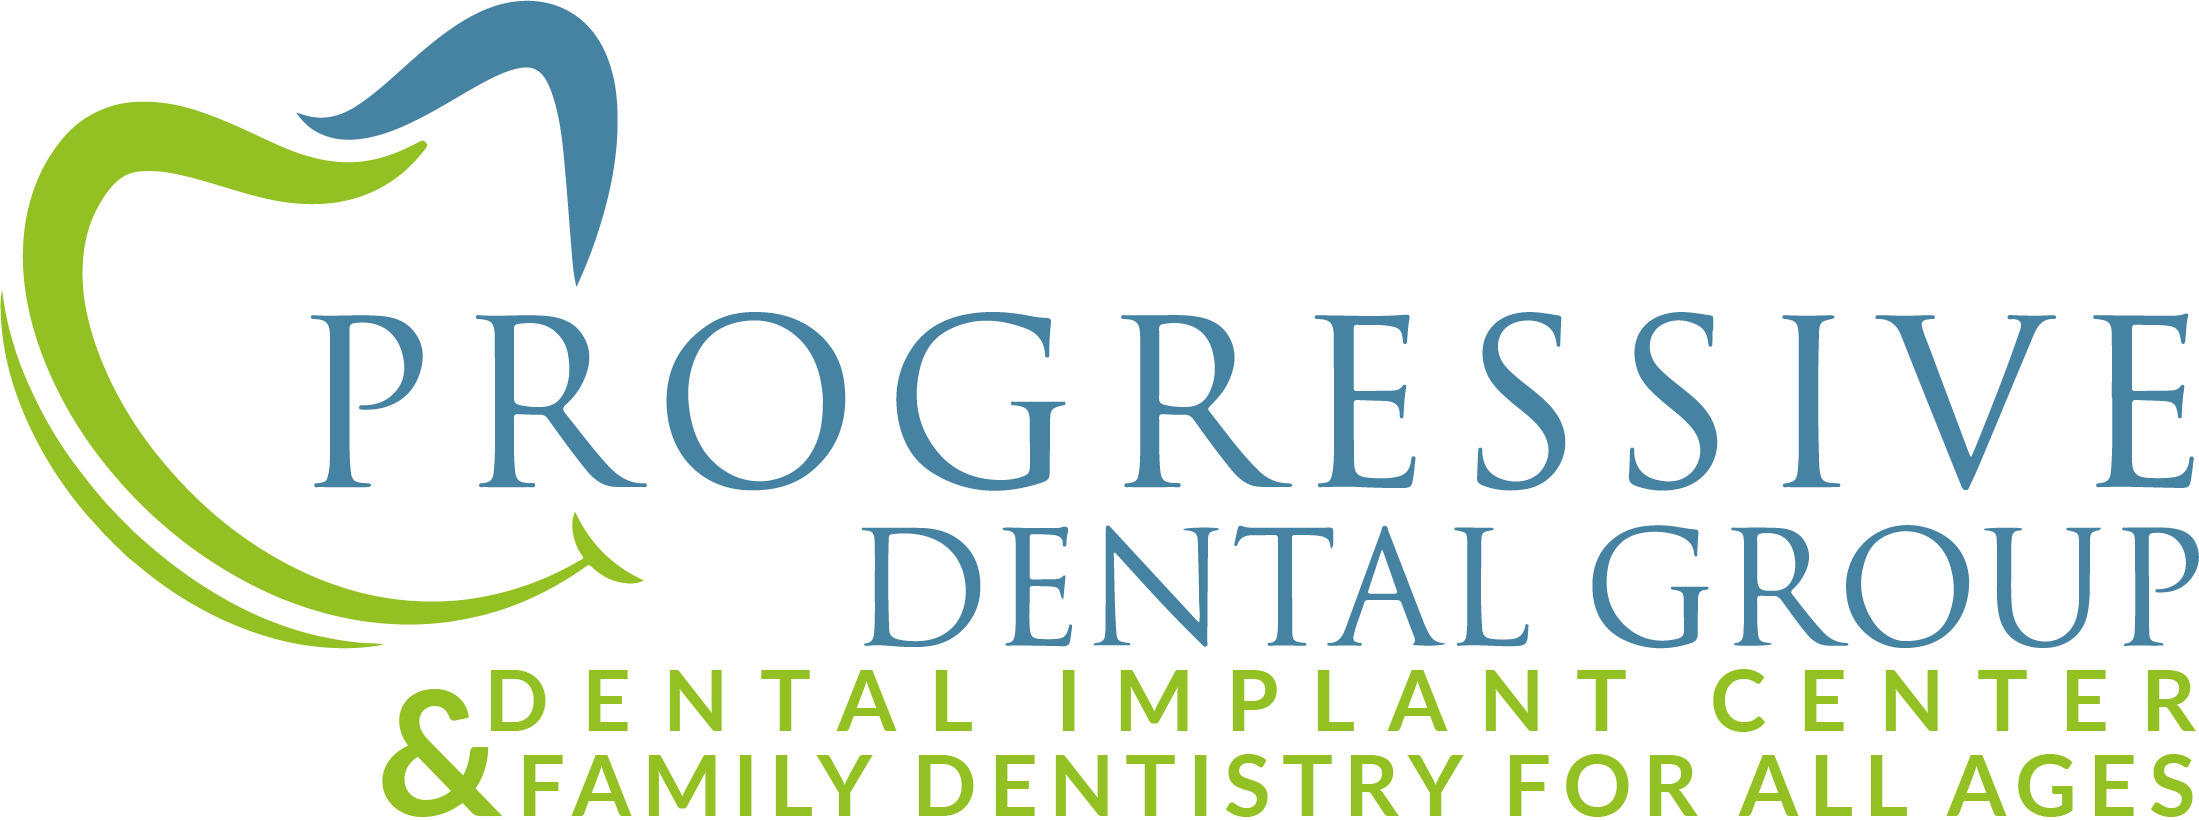 Progressive Dental Group logo